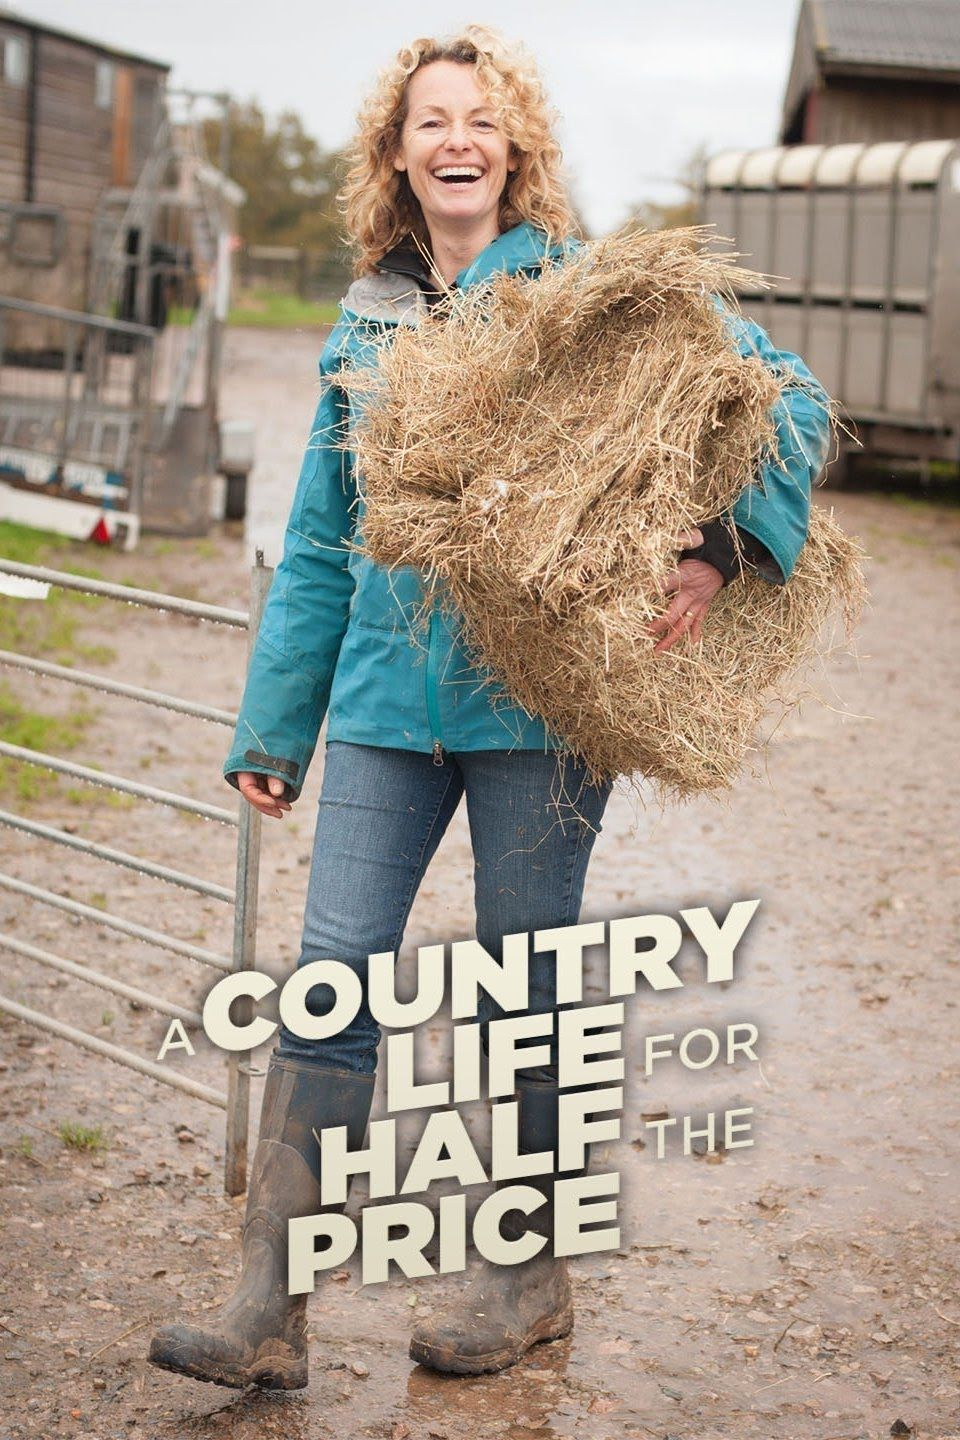 A Country Life for Half the Price with Kate Humble ne zaman